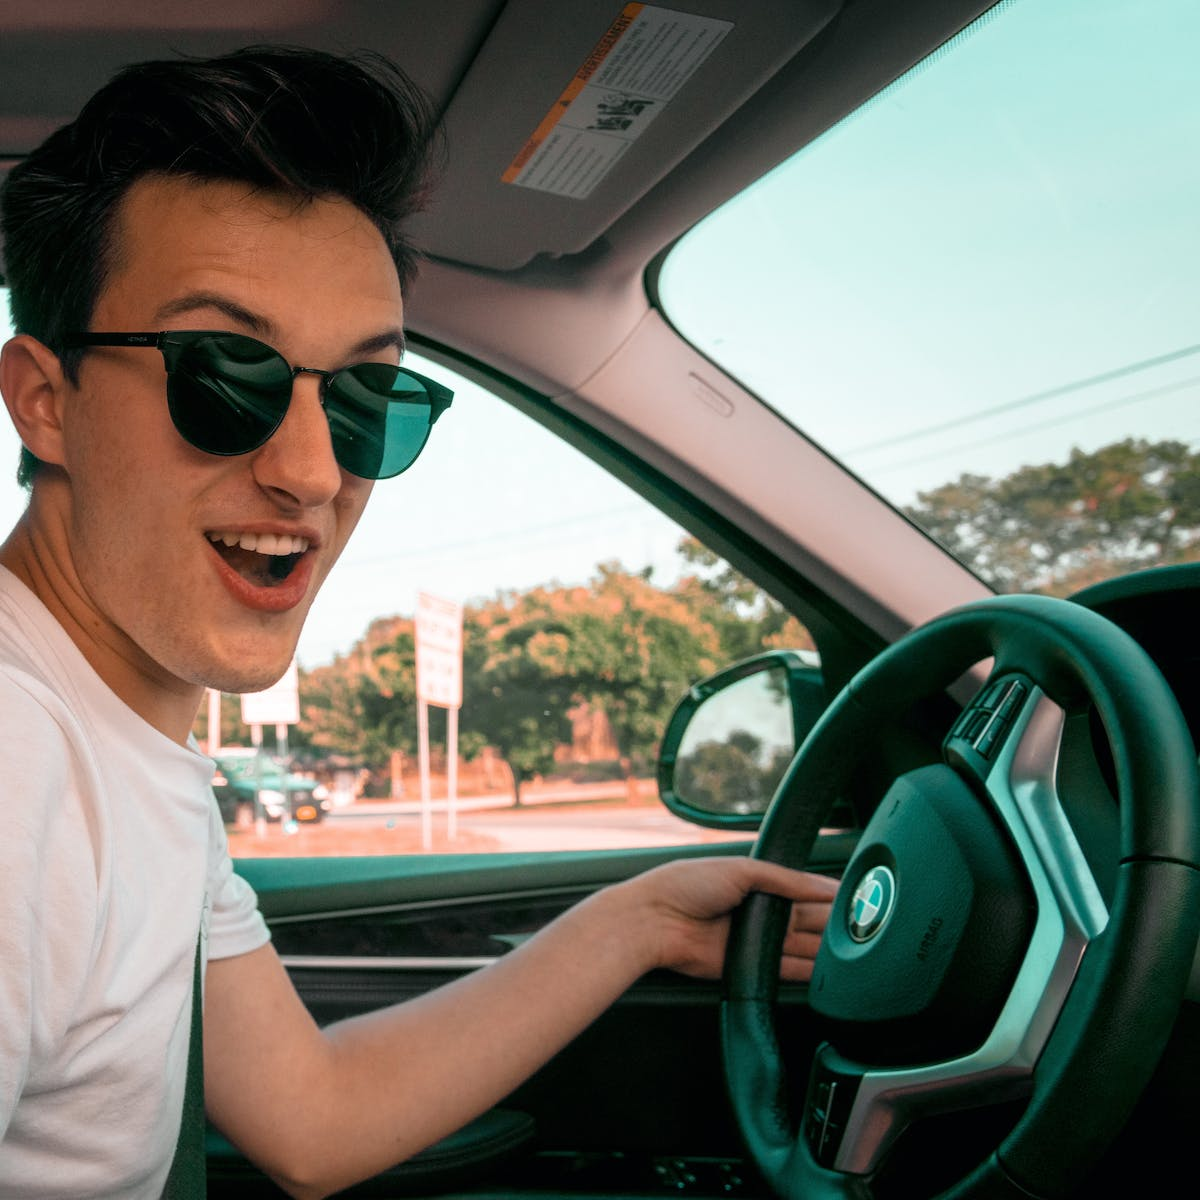 Teen Driving: Brain Changes Make Some Teens More Likely to Crash Their Cars